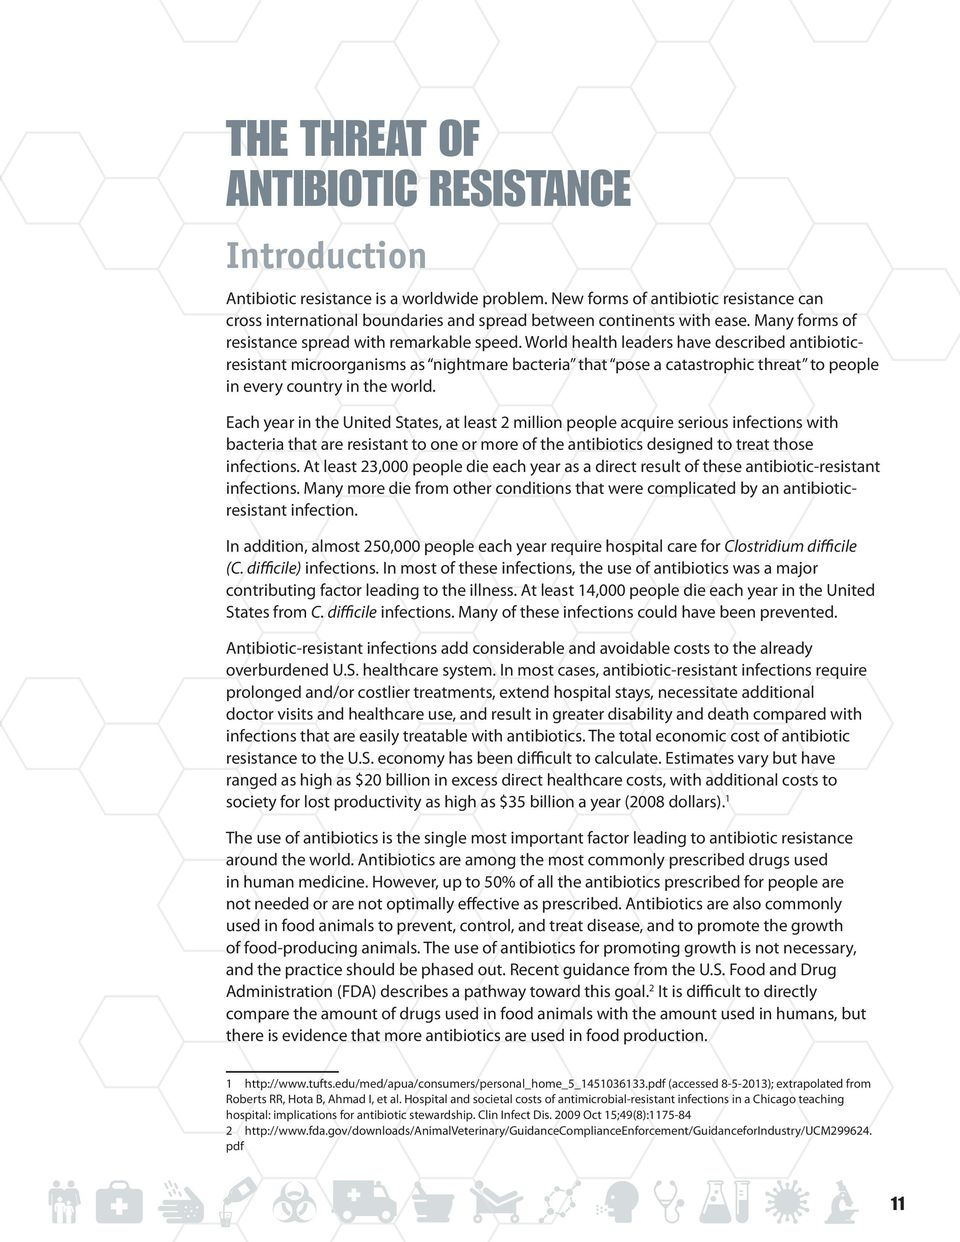 World health leaders have described antibioticresistant microorganisms as nightmare bacteria that pose a catastrophic threat to people in every country in the world.